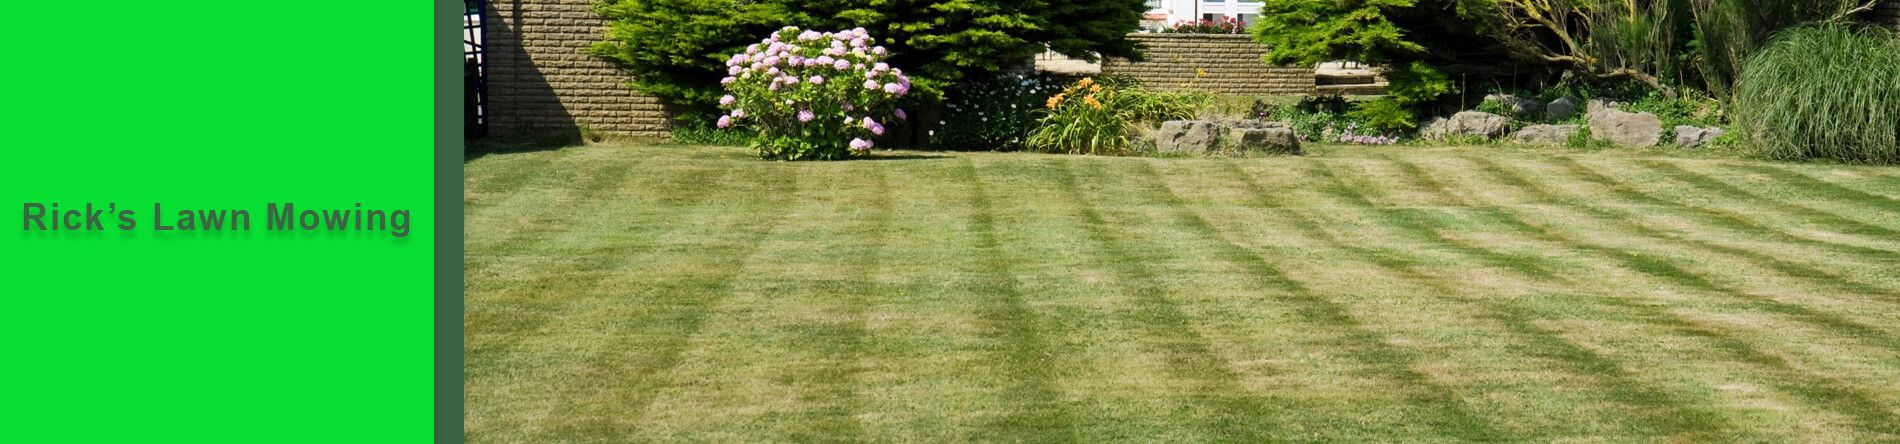 Rick S Lawn Mowing Is A Lawn Care Service In Rochester Mn We Provide A Variety Of Services Including Lawn Care Lawn Care Lawn Care Business Lawn Maintenance